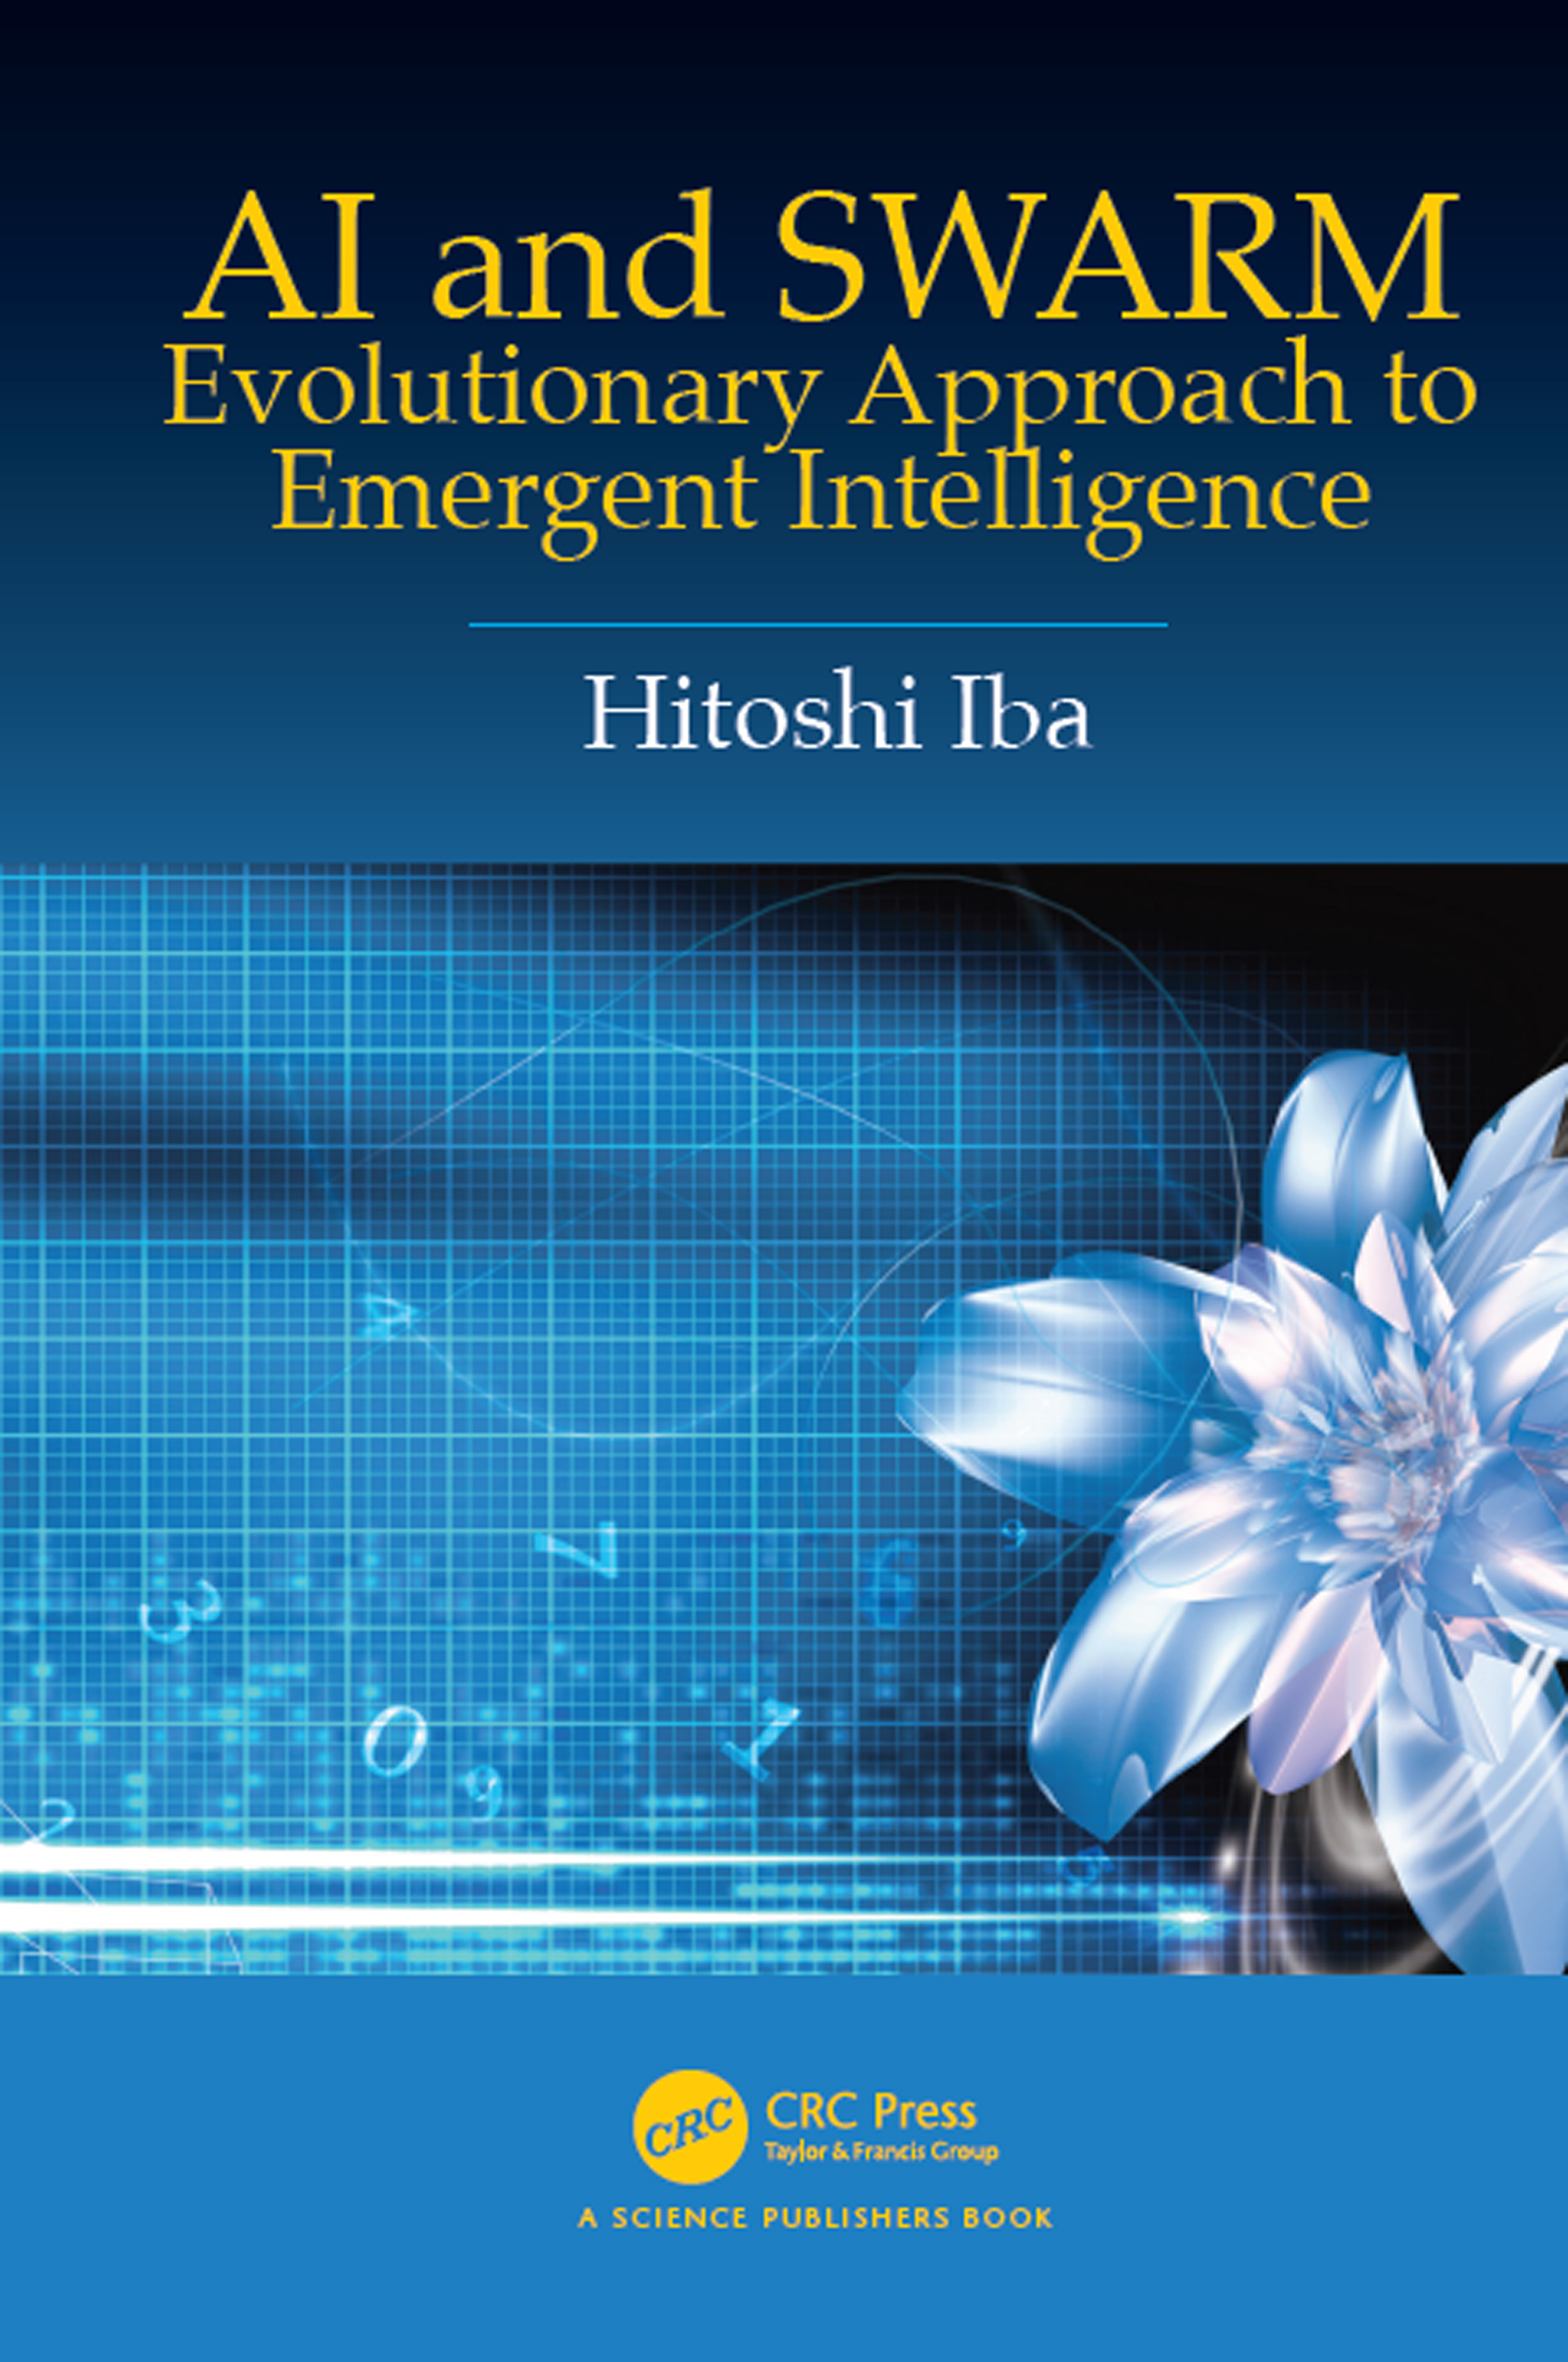 AI and SWARM: Evolutionary Approach to Emergent Intelligence book cover